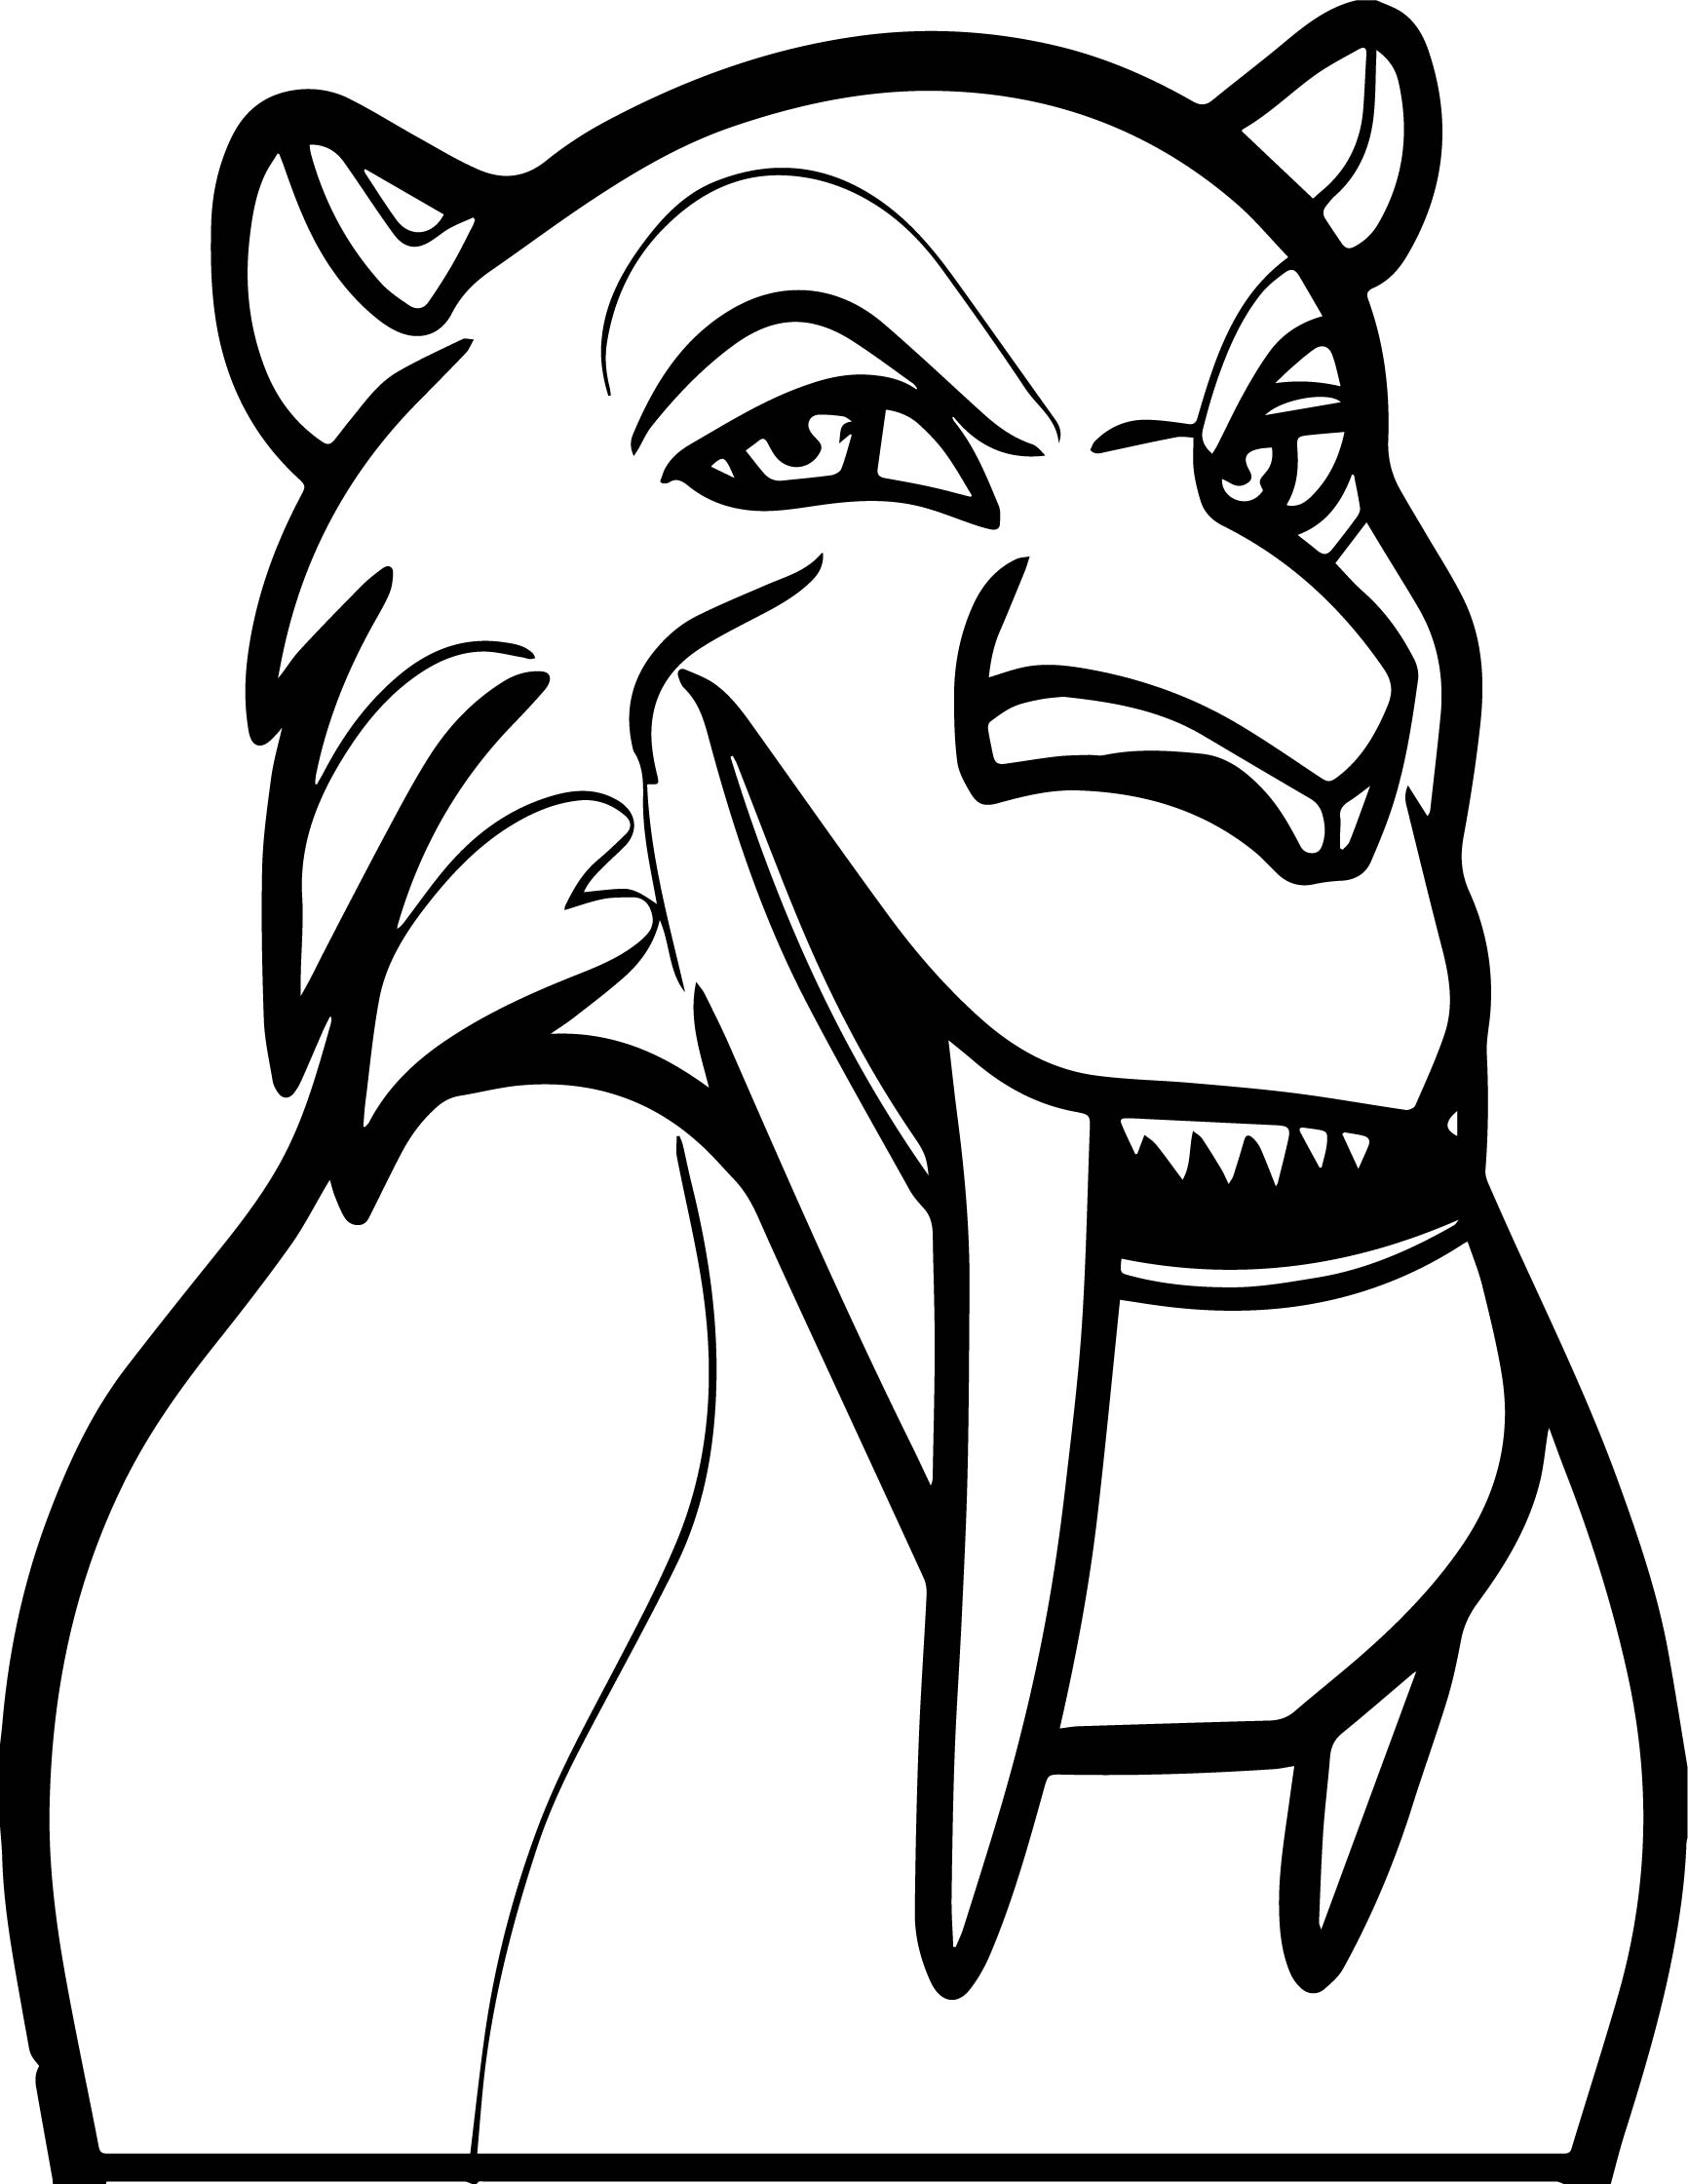 Diego From Ice Age Coloring Page